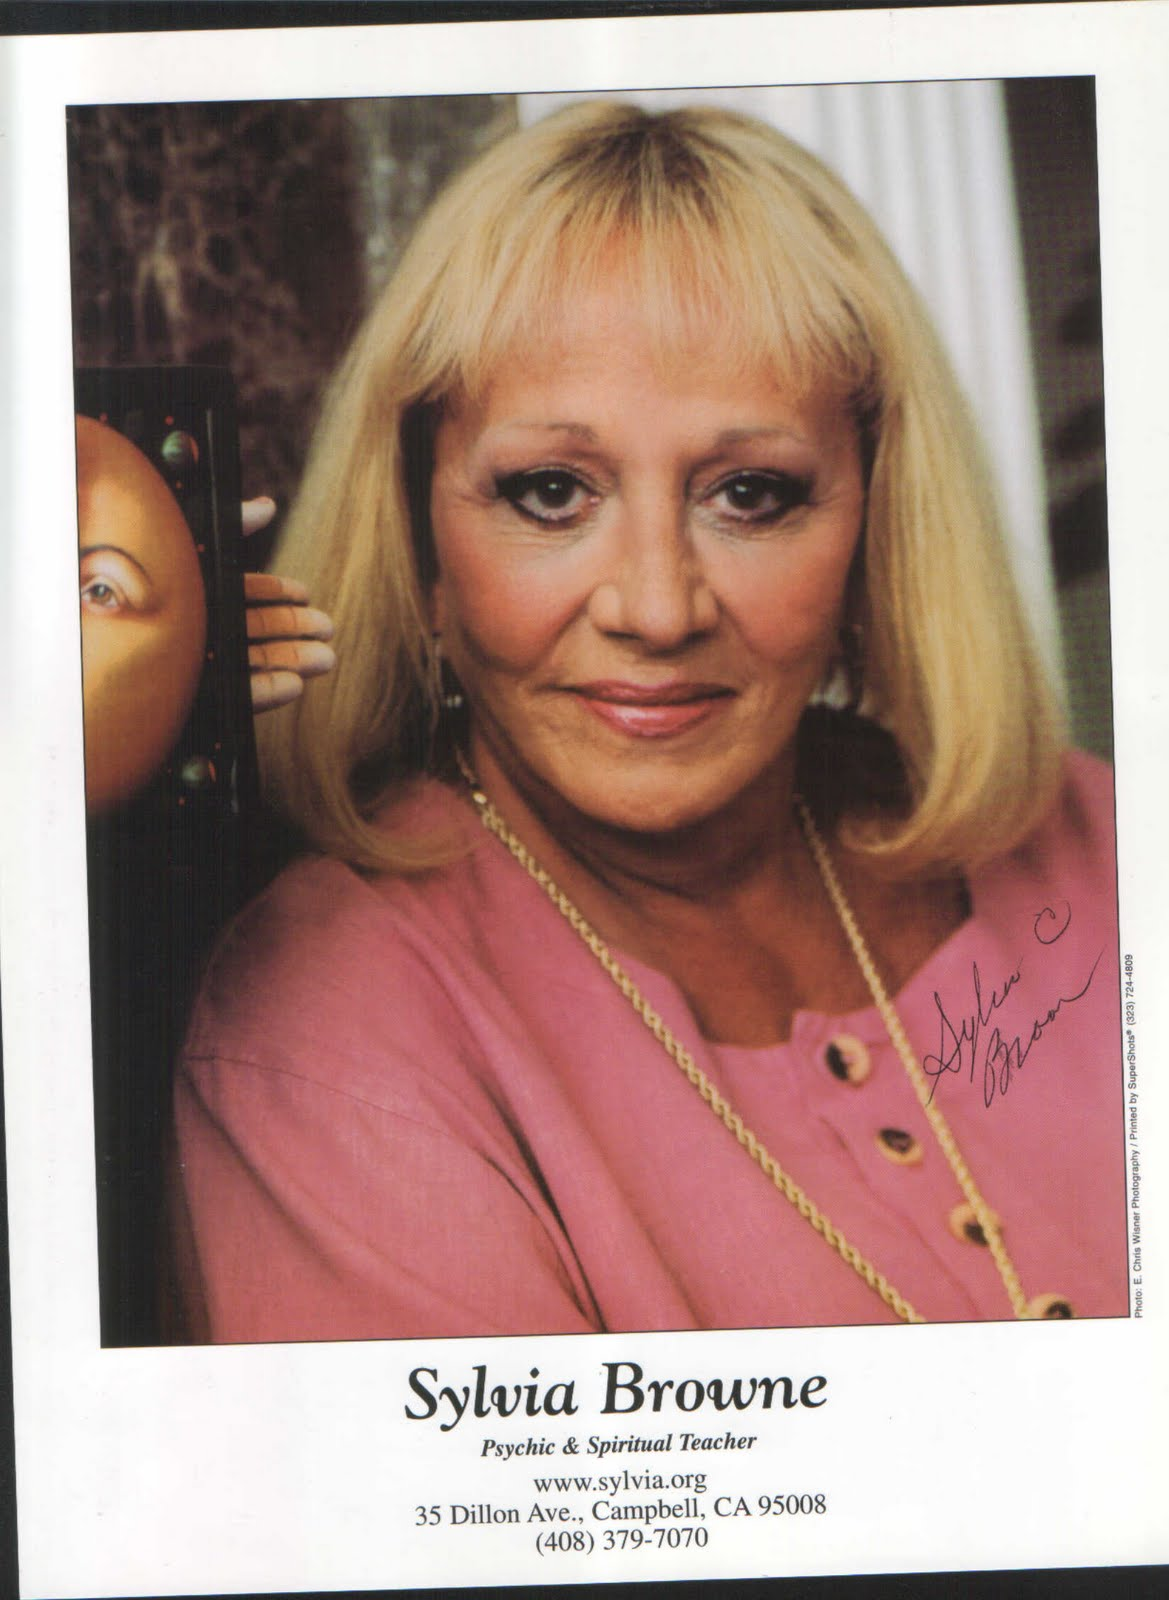 sylvia browne fingernails